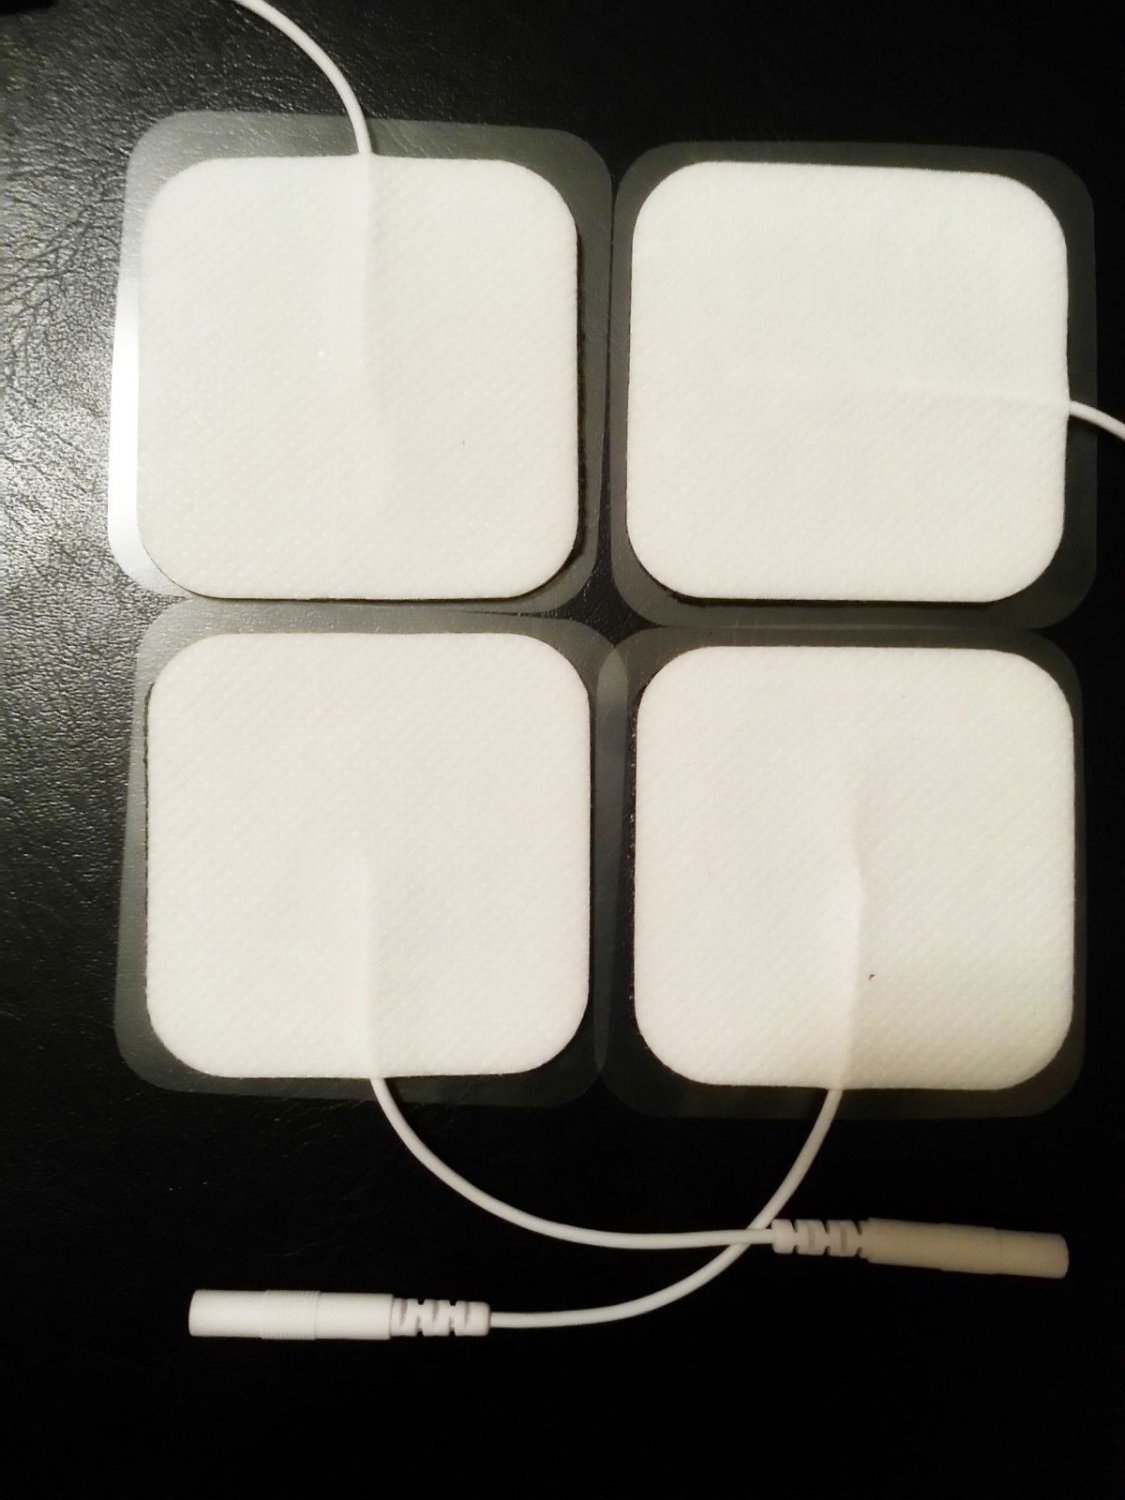 16 pc Square Replacement Electrode Pads 5X5cm for Intensity Twin Stim III Tens